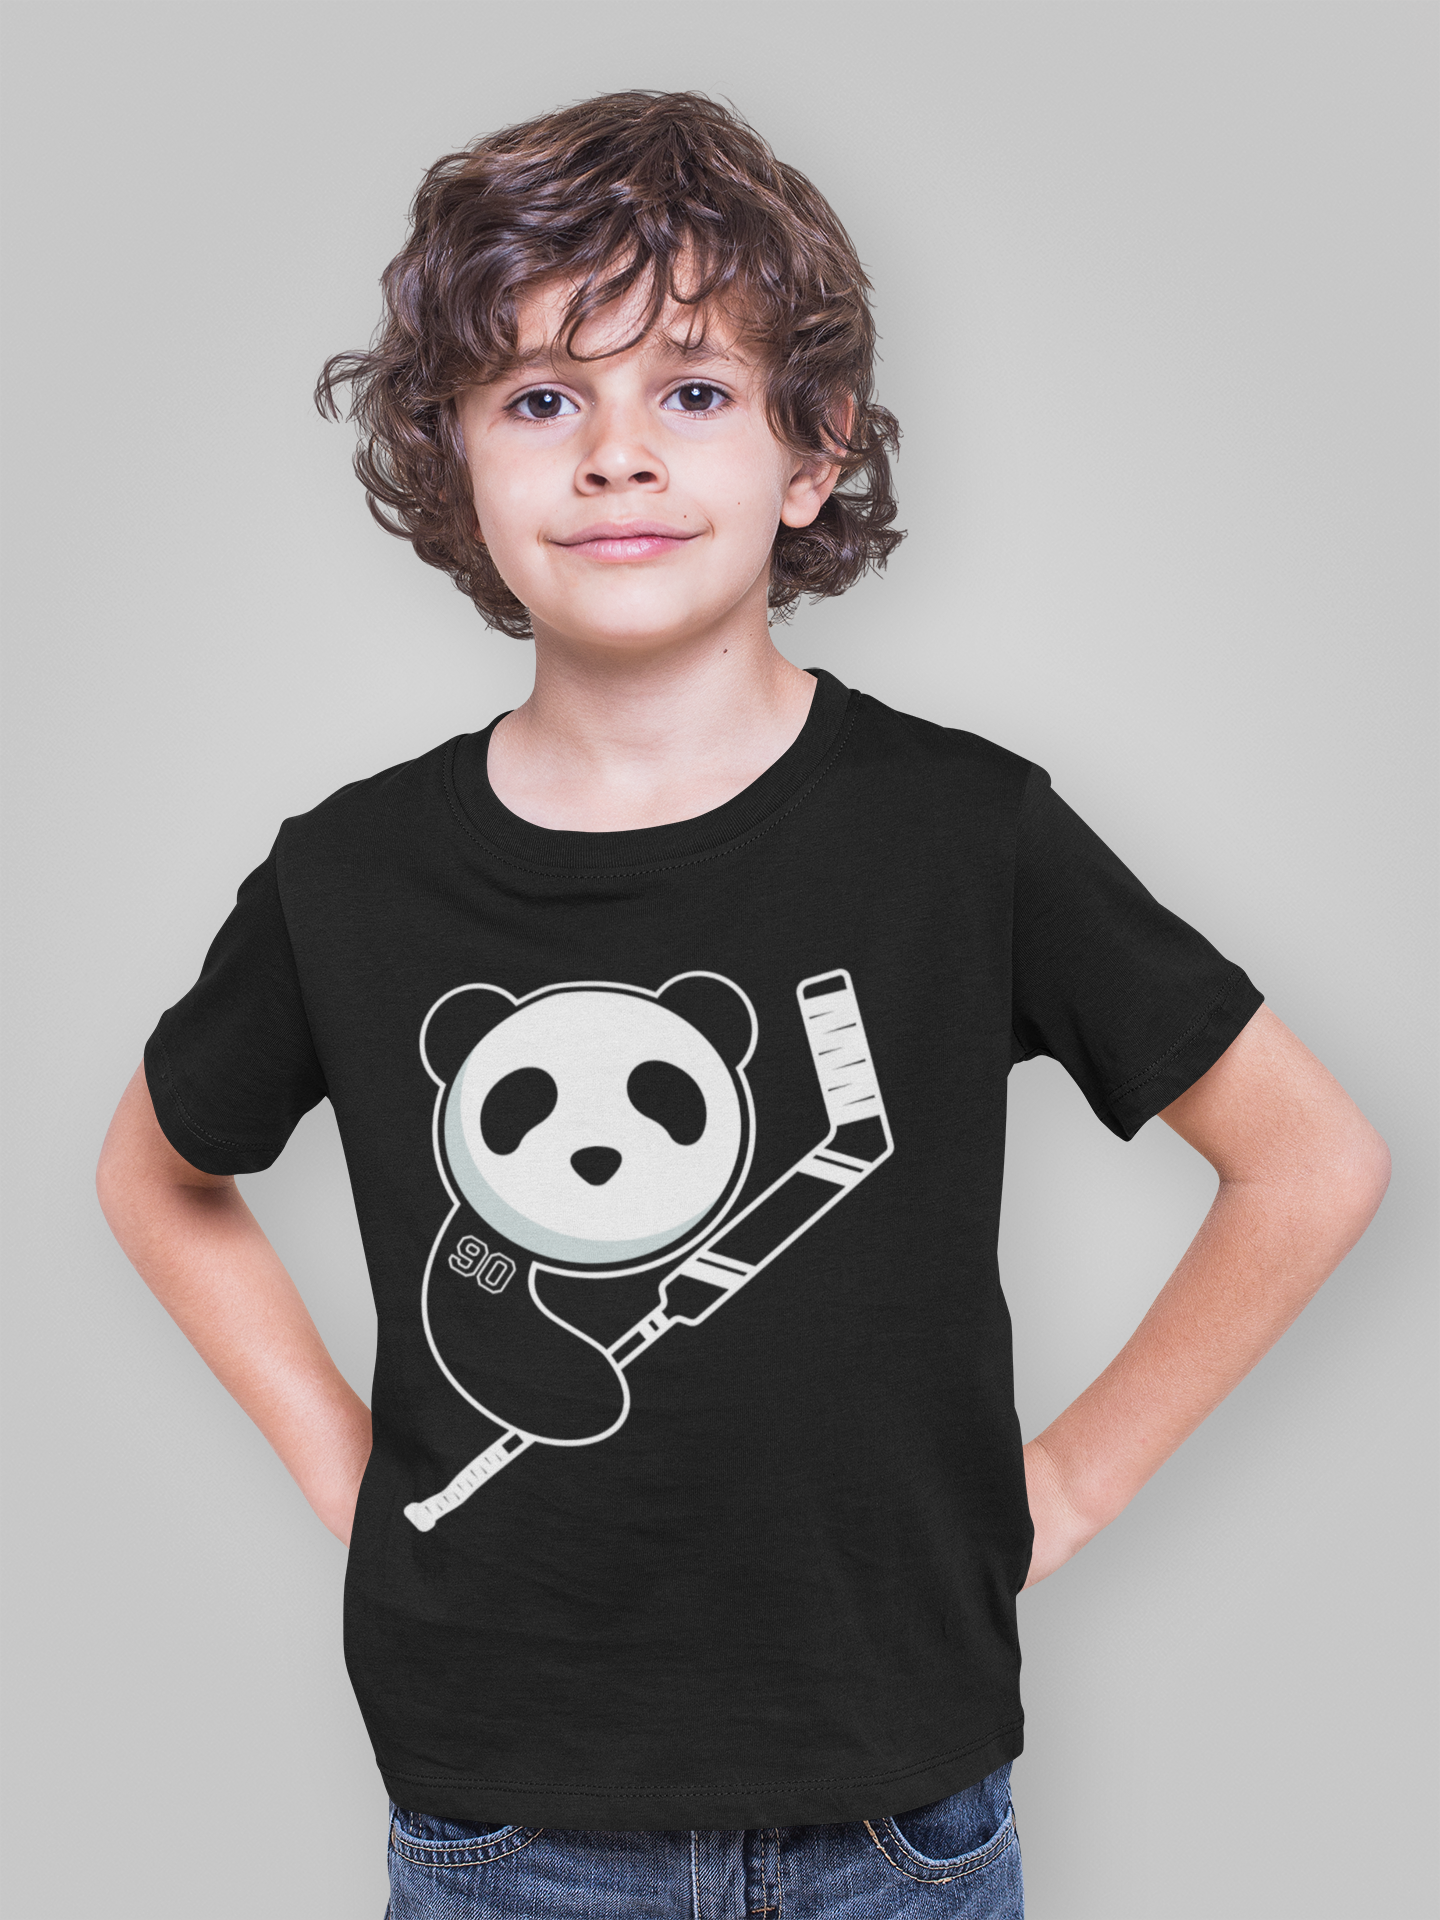 Black Youth Panda with Goalie Stick Shirt